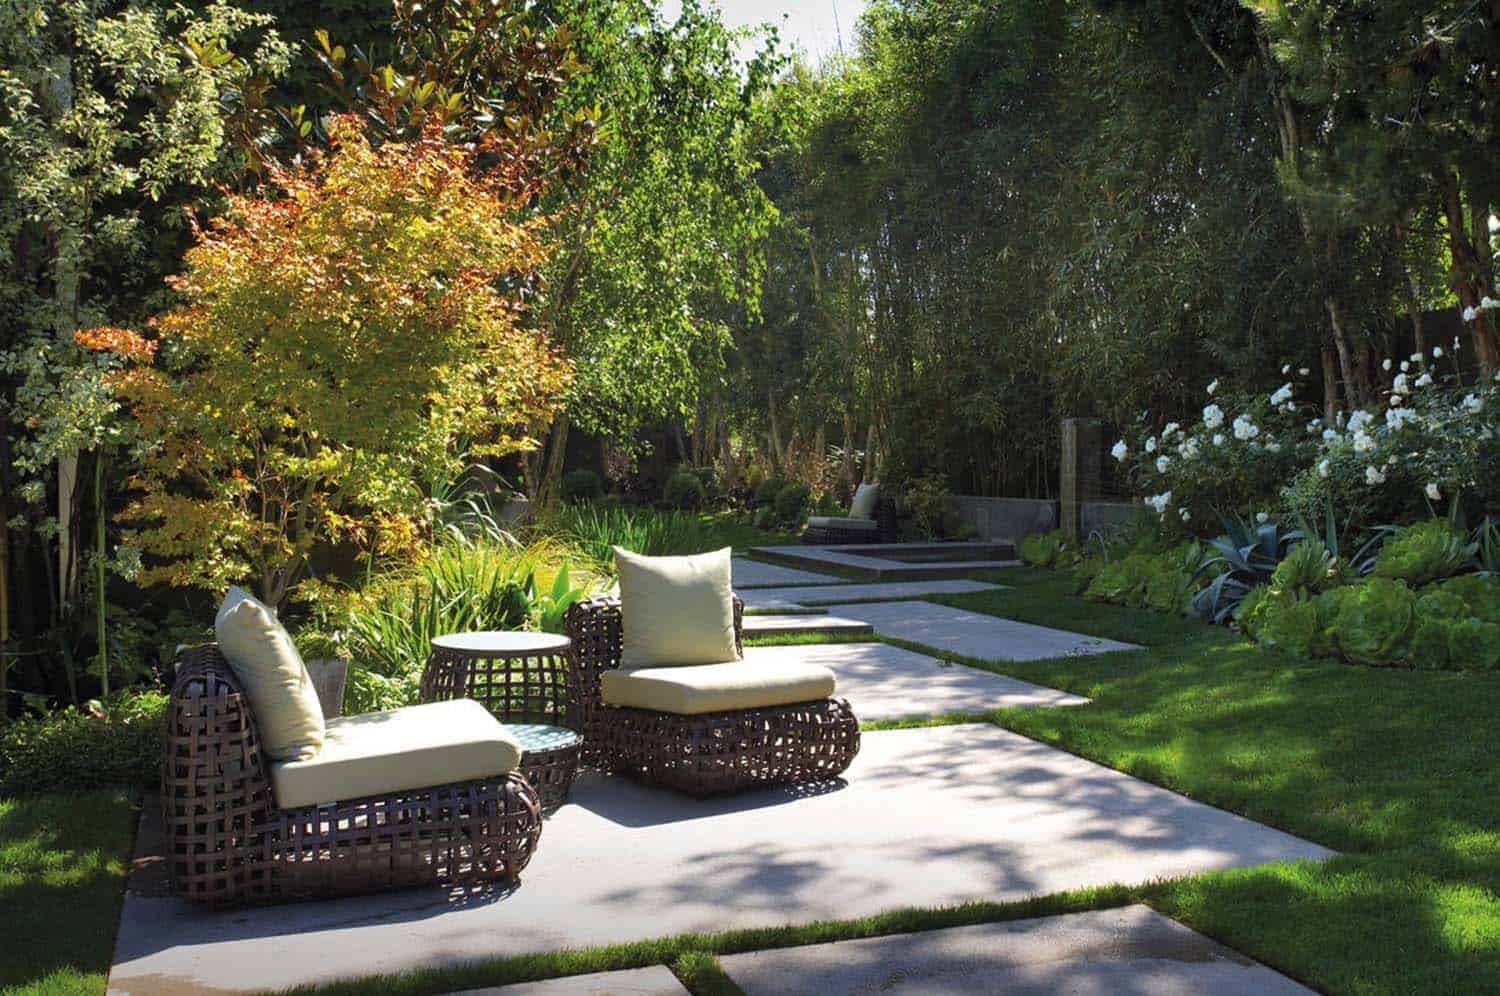 33 Fabulous Ideas For Creating Beautiful Outdoor Living Spaces on Garden And Outdoor Living id=66744